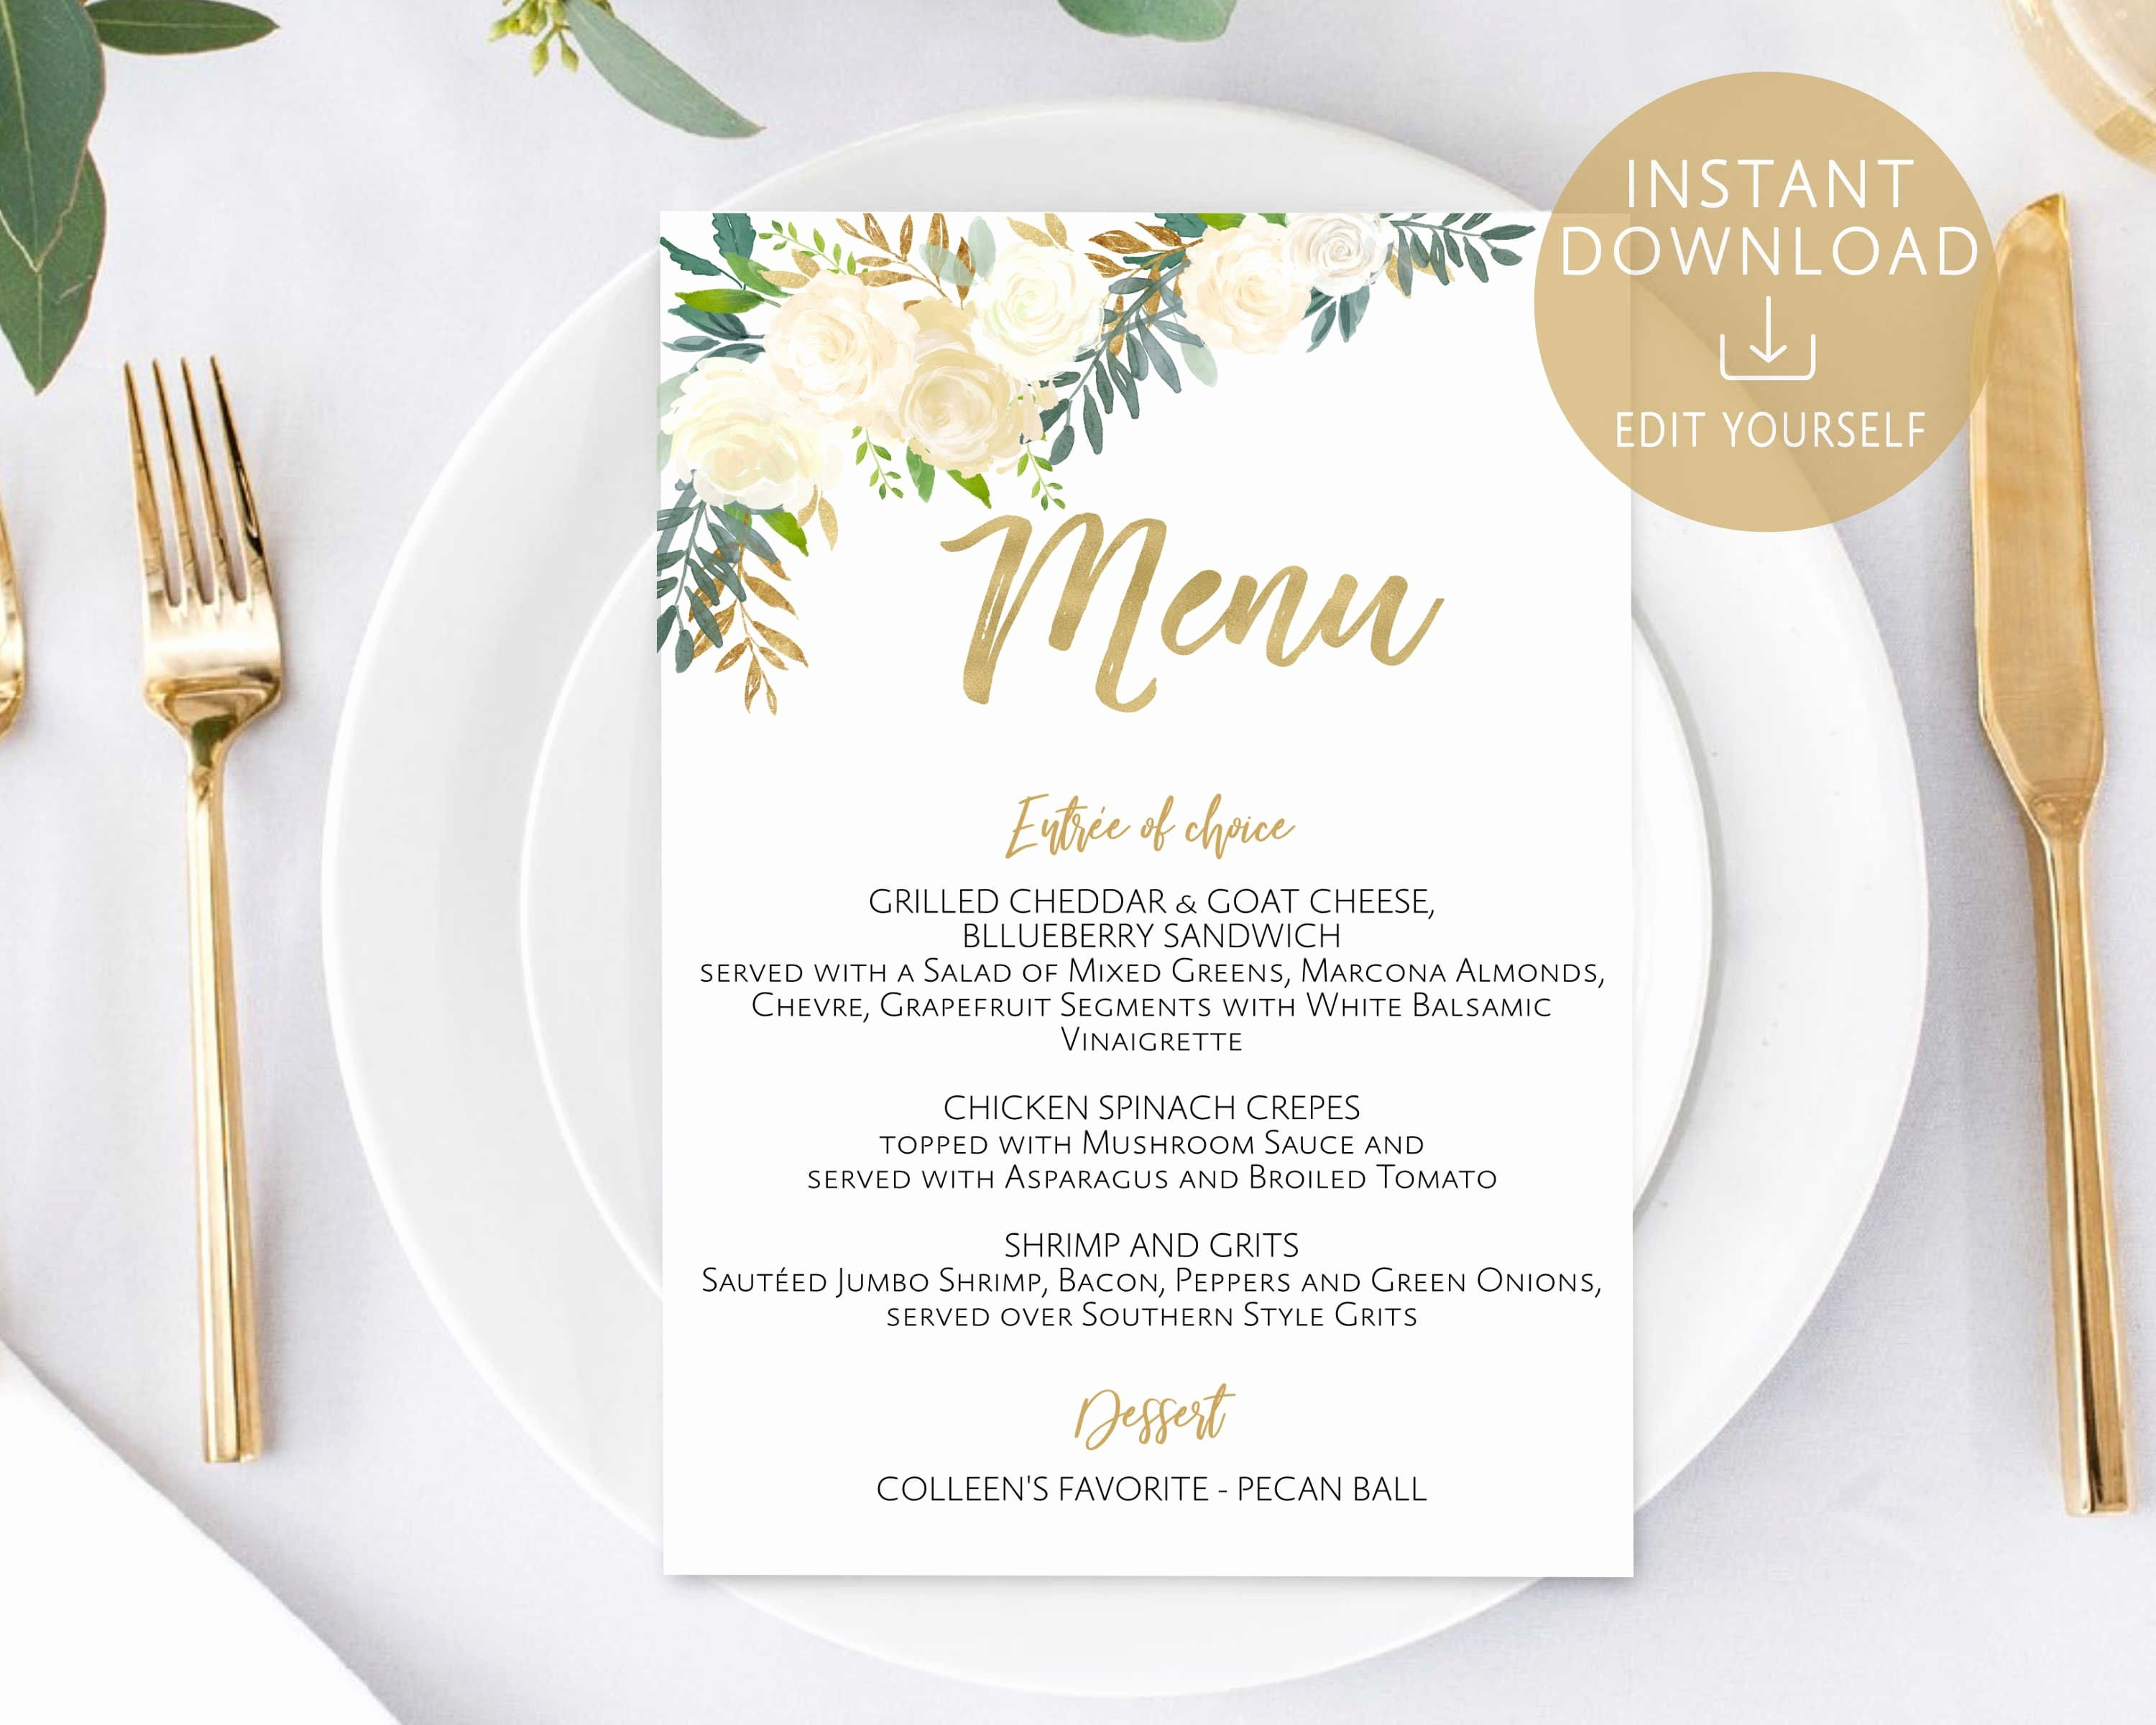 Baby Shower Menu Cards New Menu Template Editable Pdf Bridal Shower Menu Baby Shower Menu Ivory White Gold Watercolor